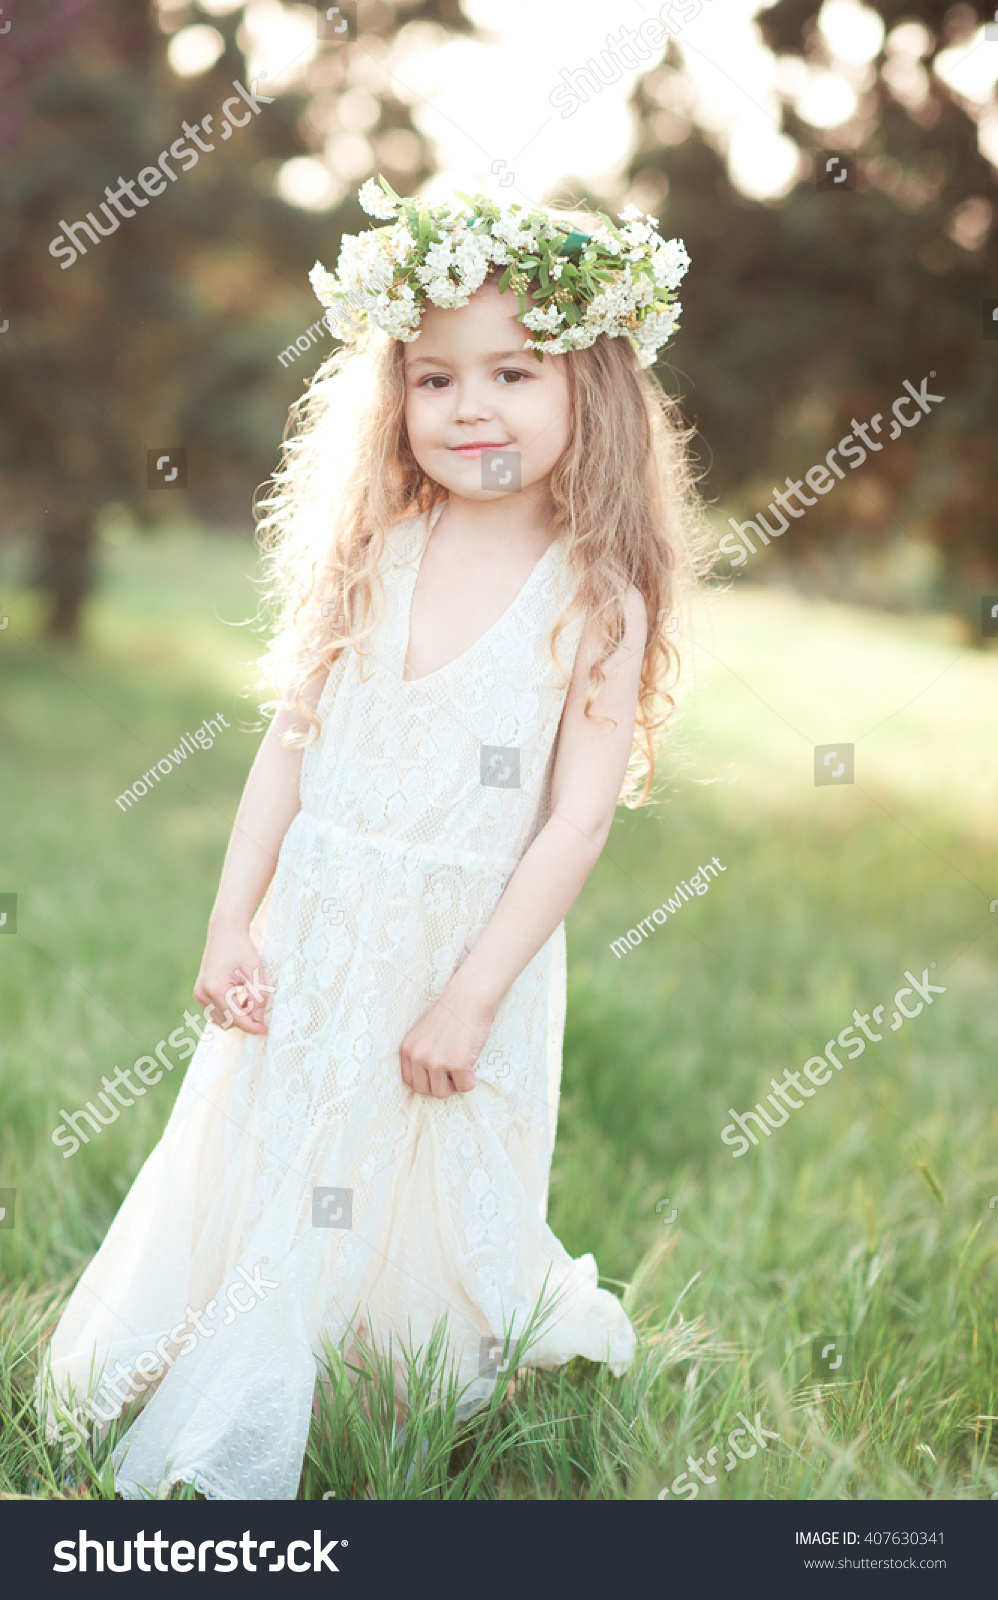 Cute Kid Girl 34 Year Old Stock Photo Edit Now 407630341